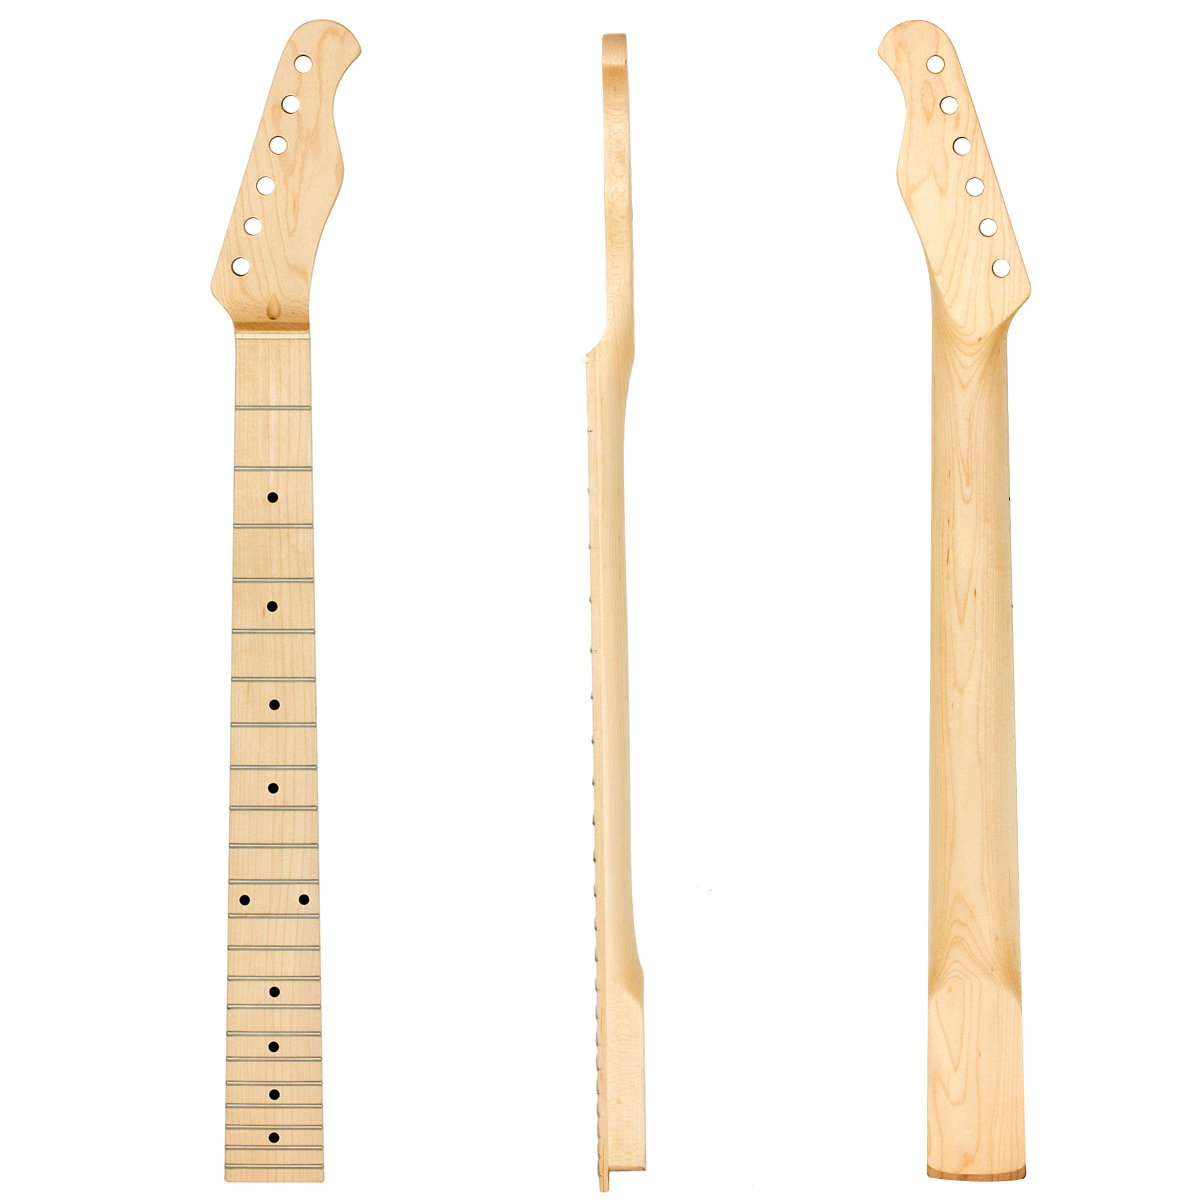 Electric Guitar Neck Clear Satin Maple Wood for Similar Guitar Parts Replacement 22 Fret Guitar Parts Acceessories Ltd 4334371737